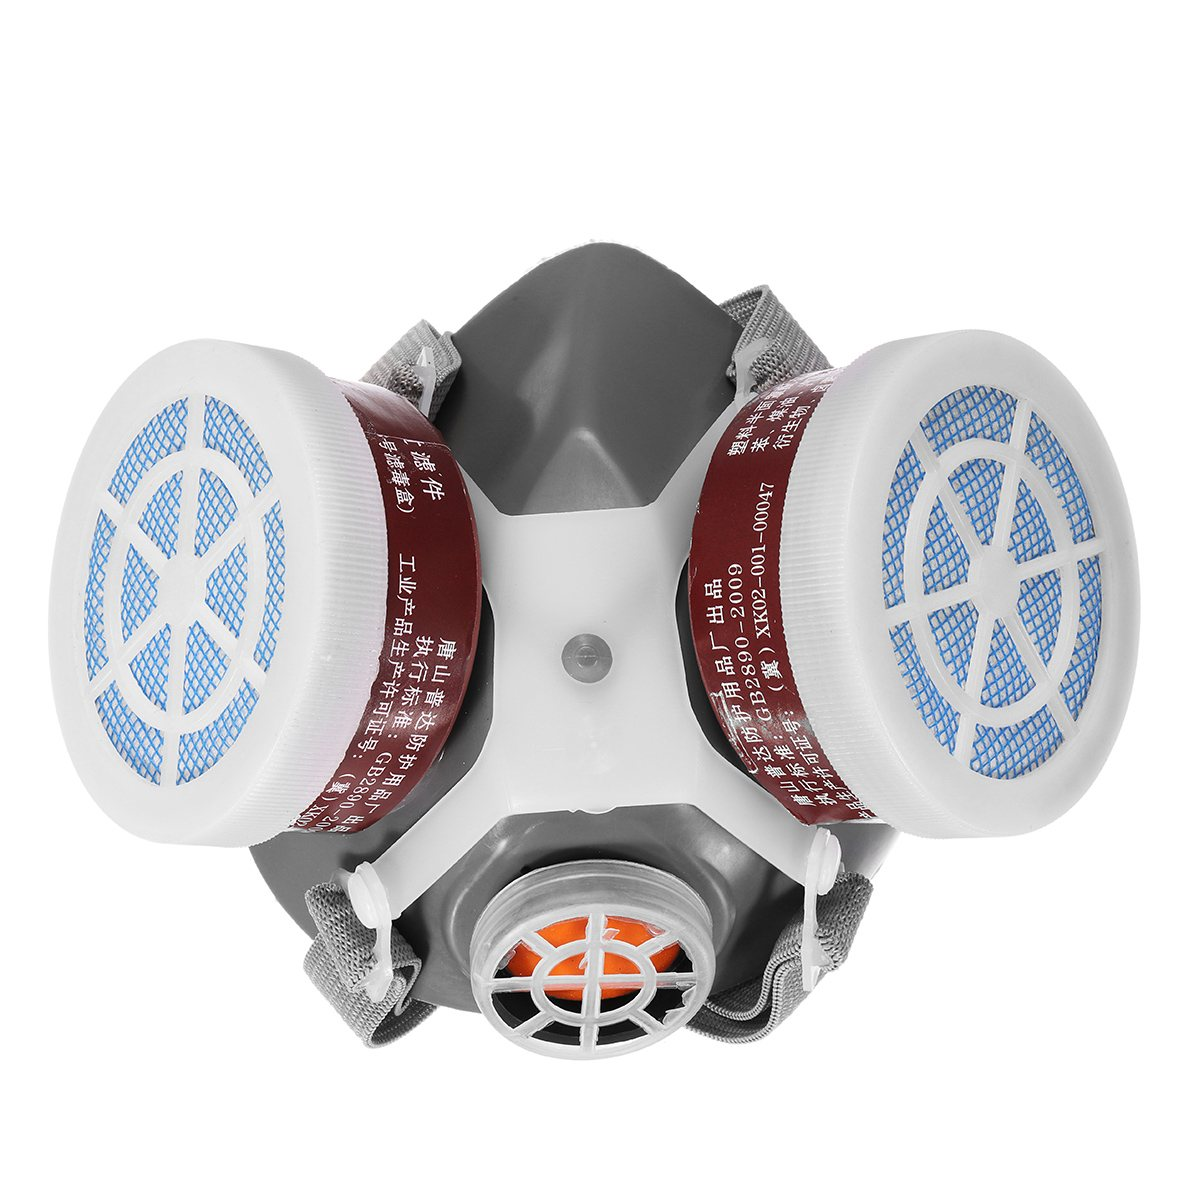 Safurance Respirator Gas Mask Safety Chemical Anti-Dust Filter Military Workplace Safety Protection Anti Dust anti splash resistant high temperature aluminum alloy bracket mask safety protection mask